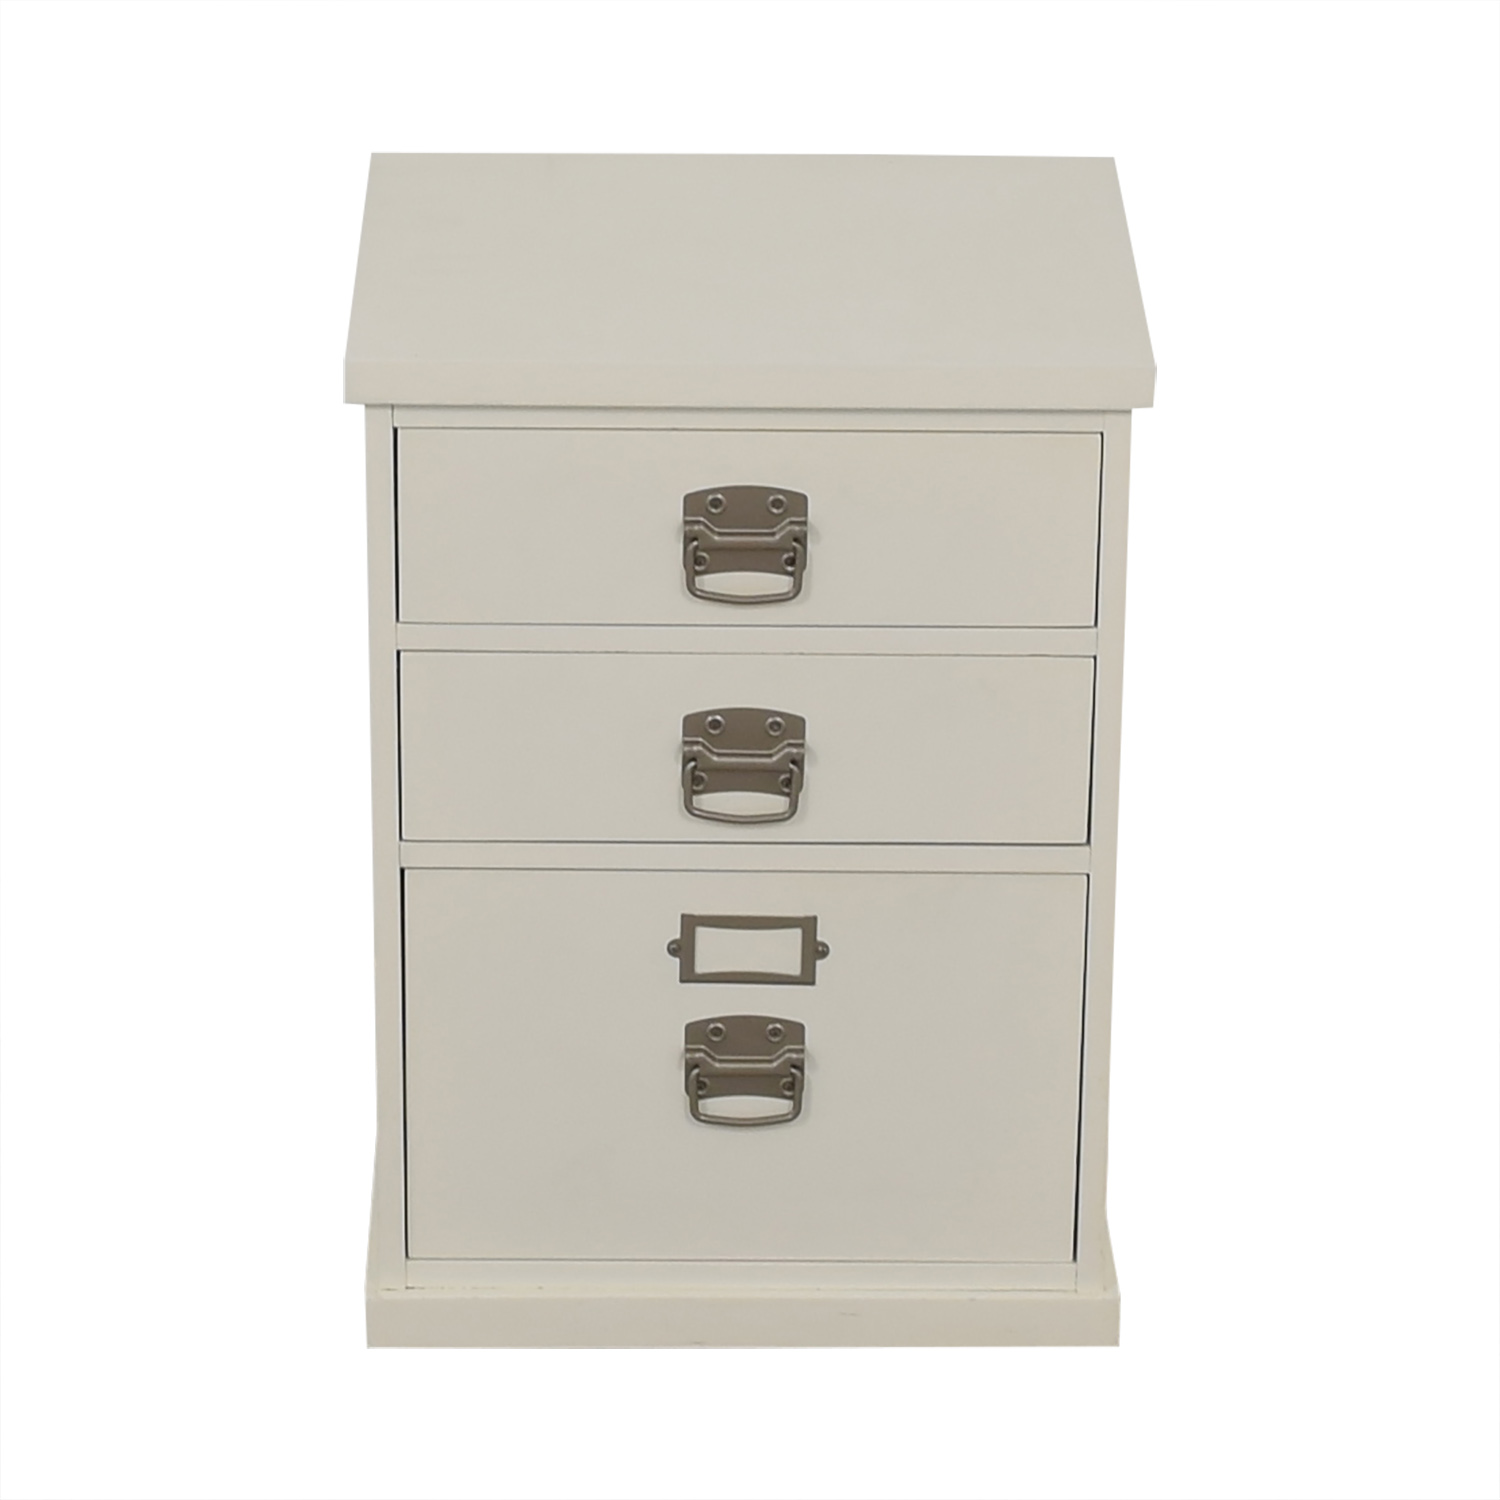 shop Pottery Barn Bedford White Three-Drawer File Cabinet Pottery Barn Storage